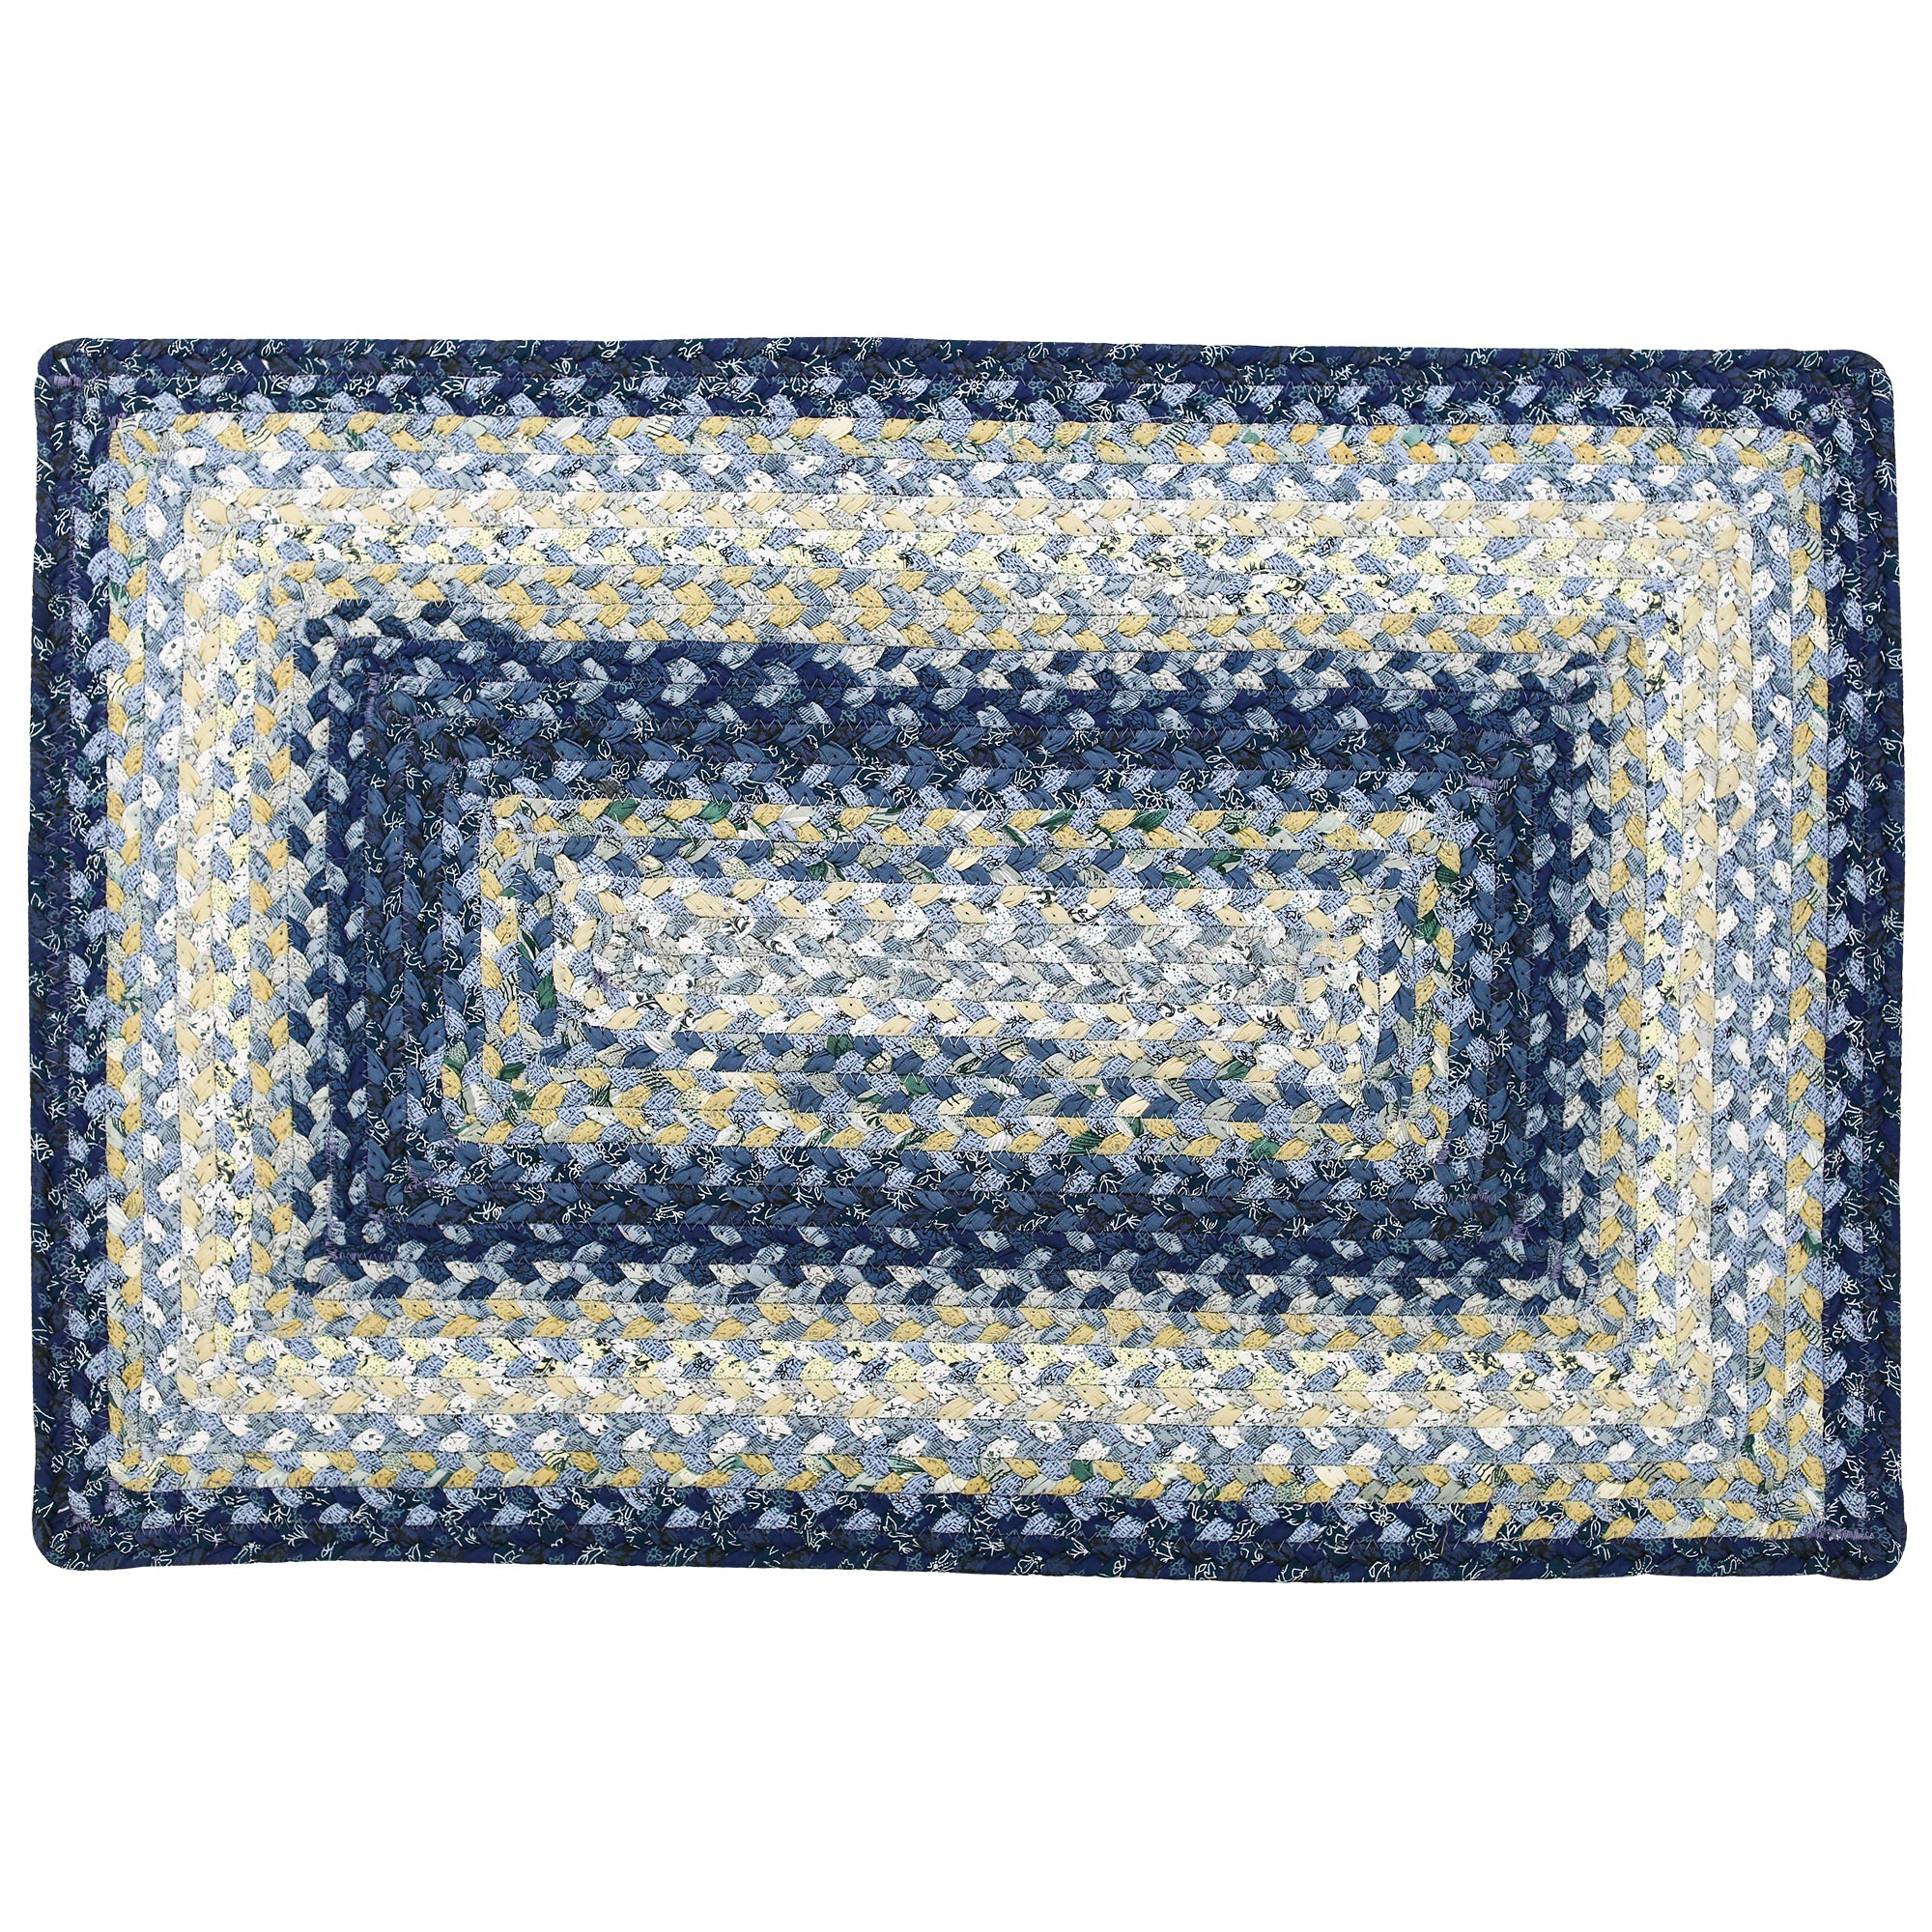 Wedgewood Coastal Cotton Braided Area Throw Rugs Oval And